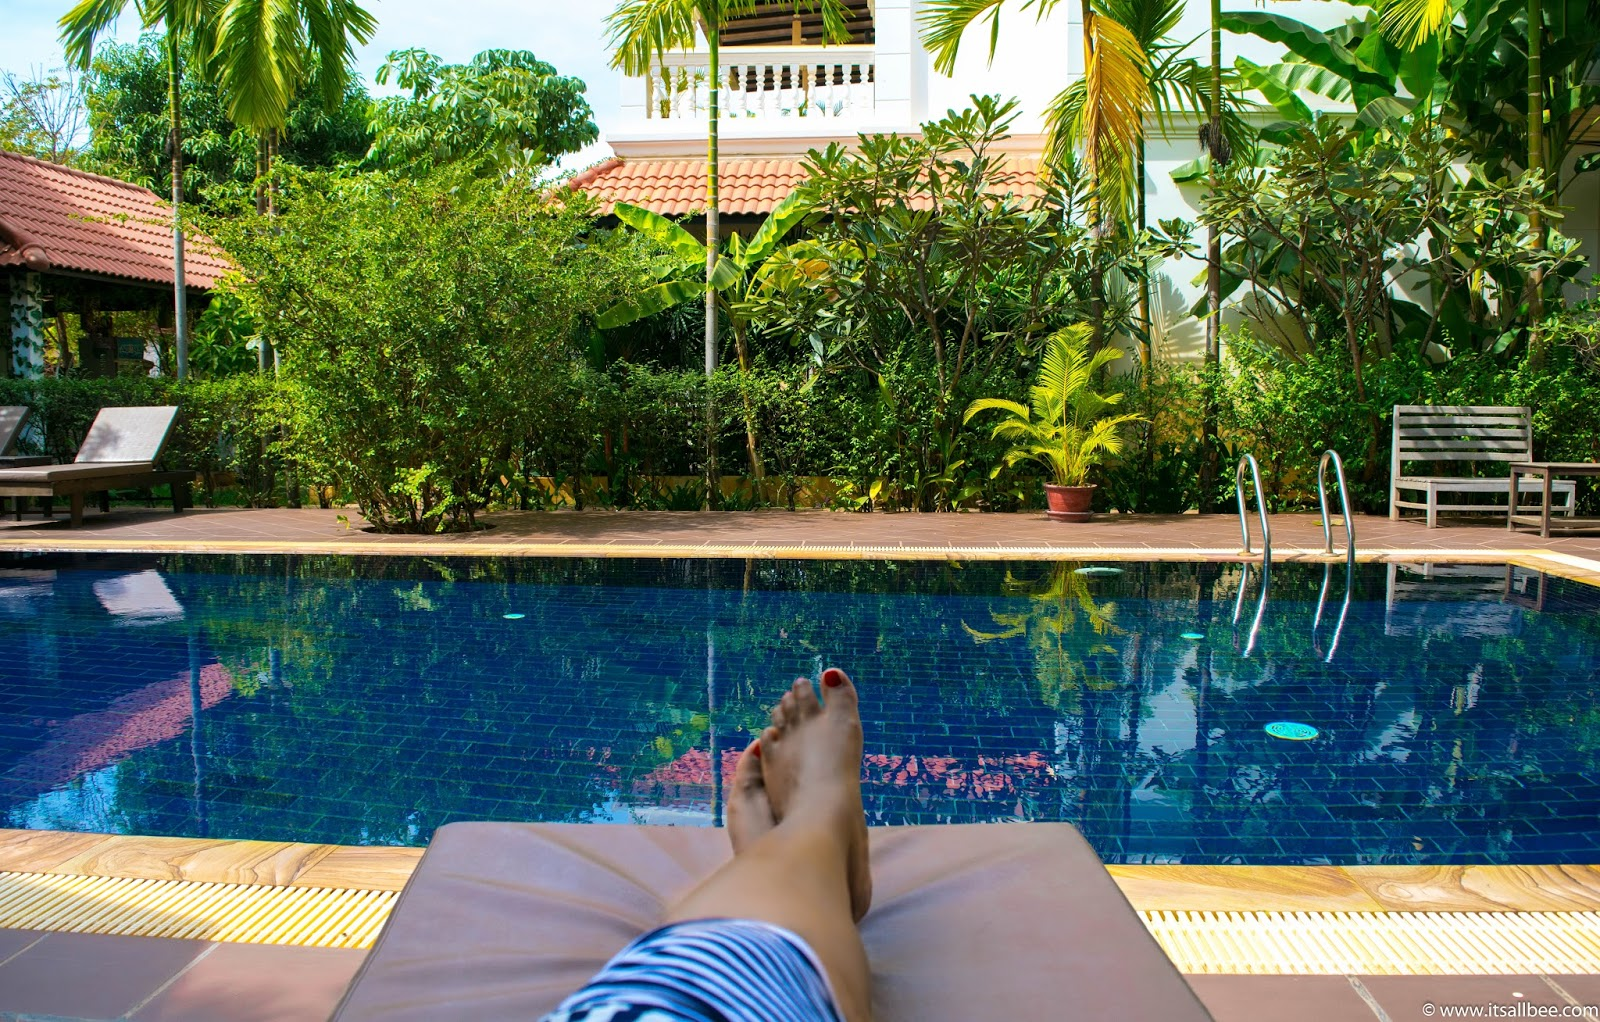 Cambodia | Where To Stay In Siem Reap with pool